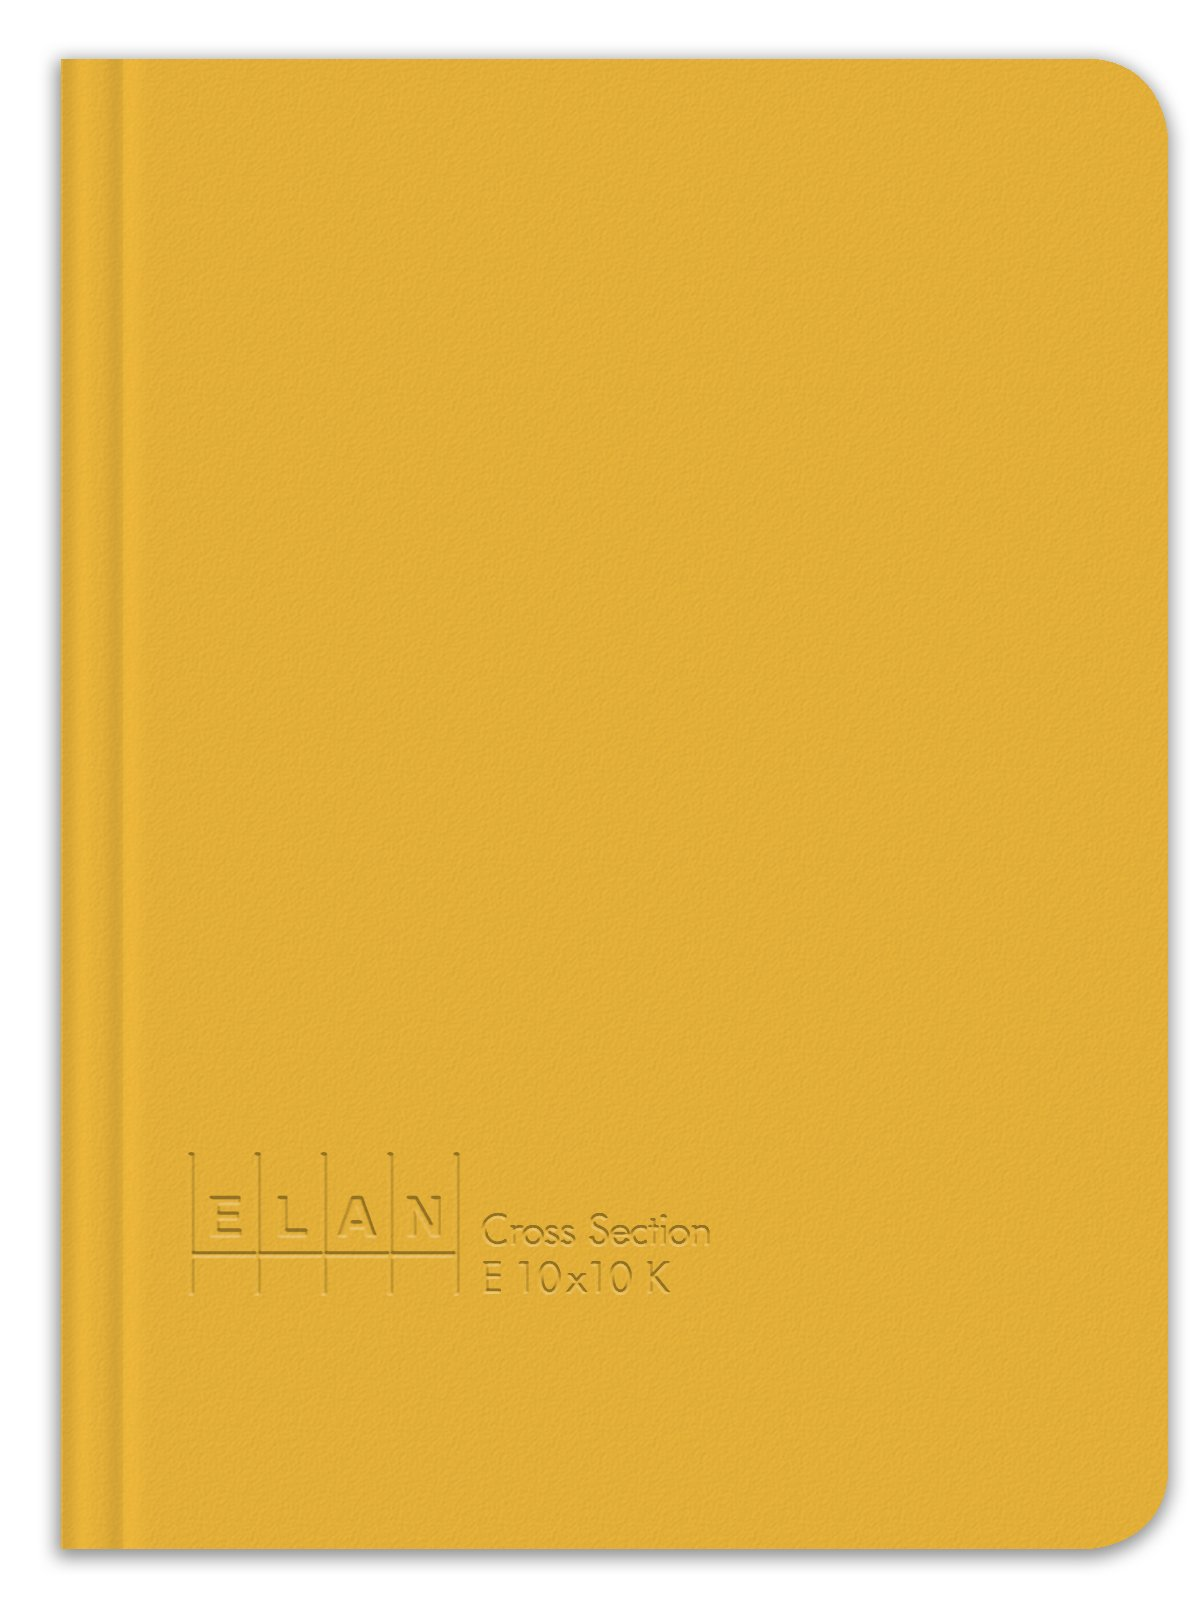 Elan Publishing Company E10x10K King Size Cross Section Book 6 ½ x 8 ½, Yellow Cover (Pack of 6)